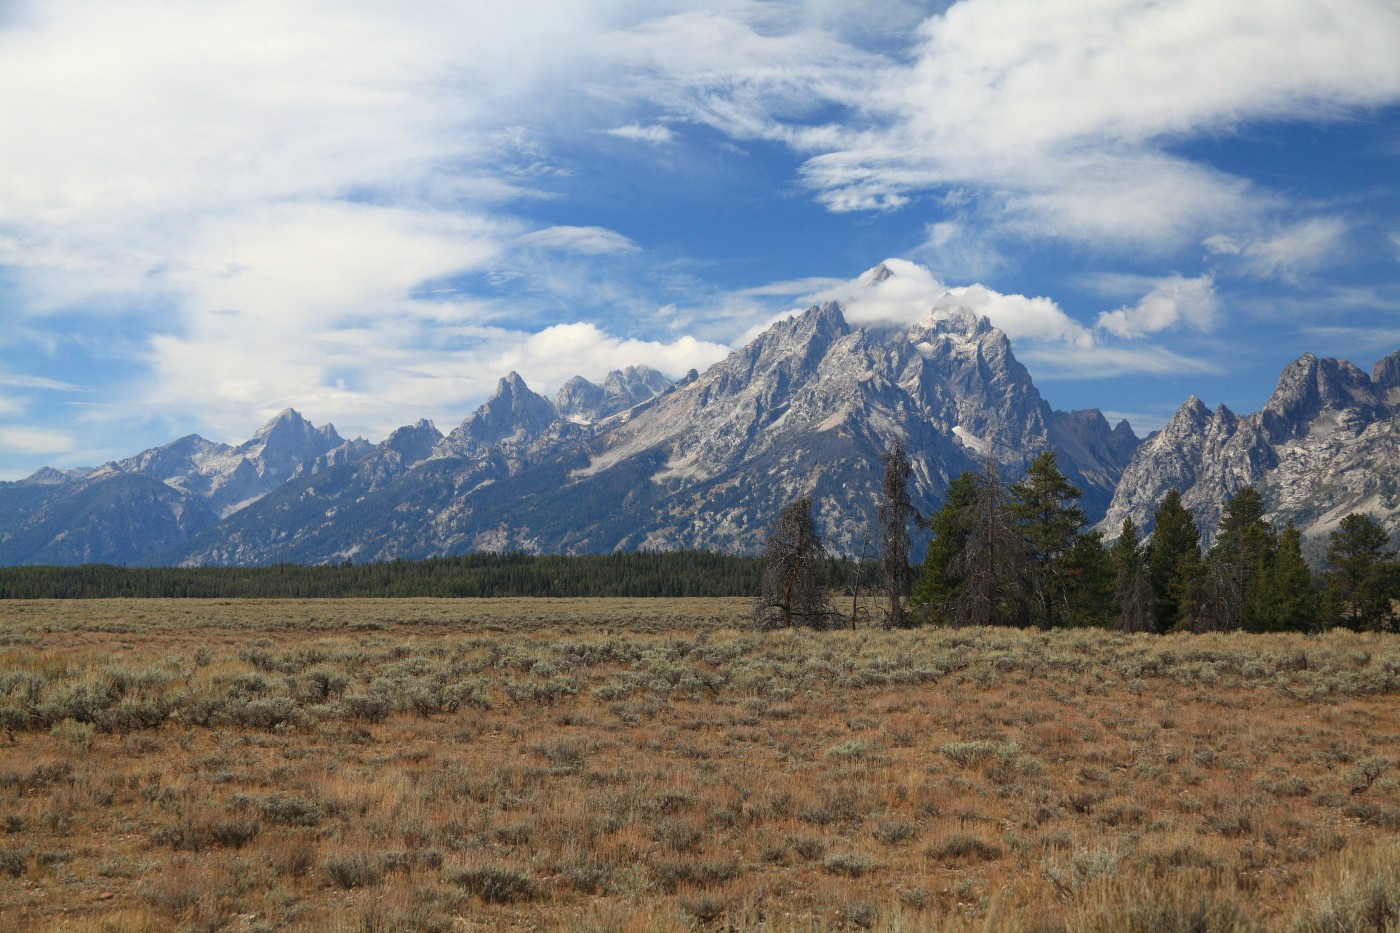 tetons grand national park author szulec szulecki joshua